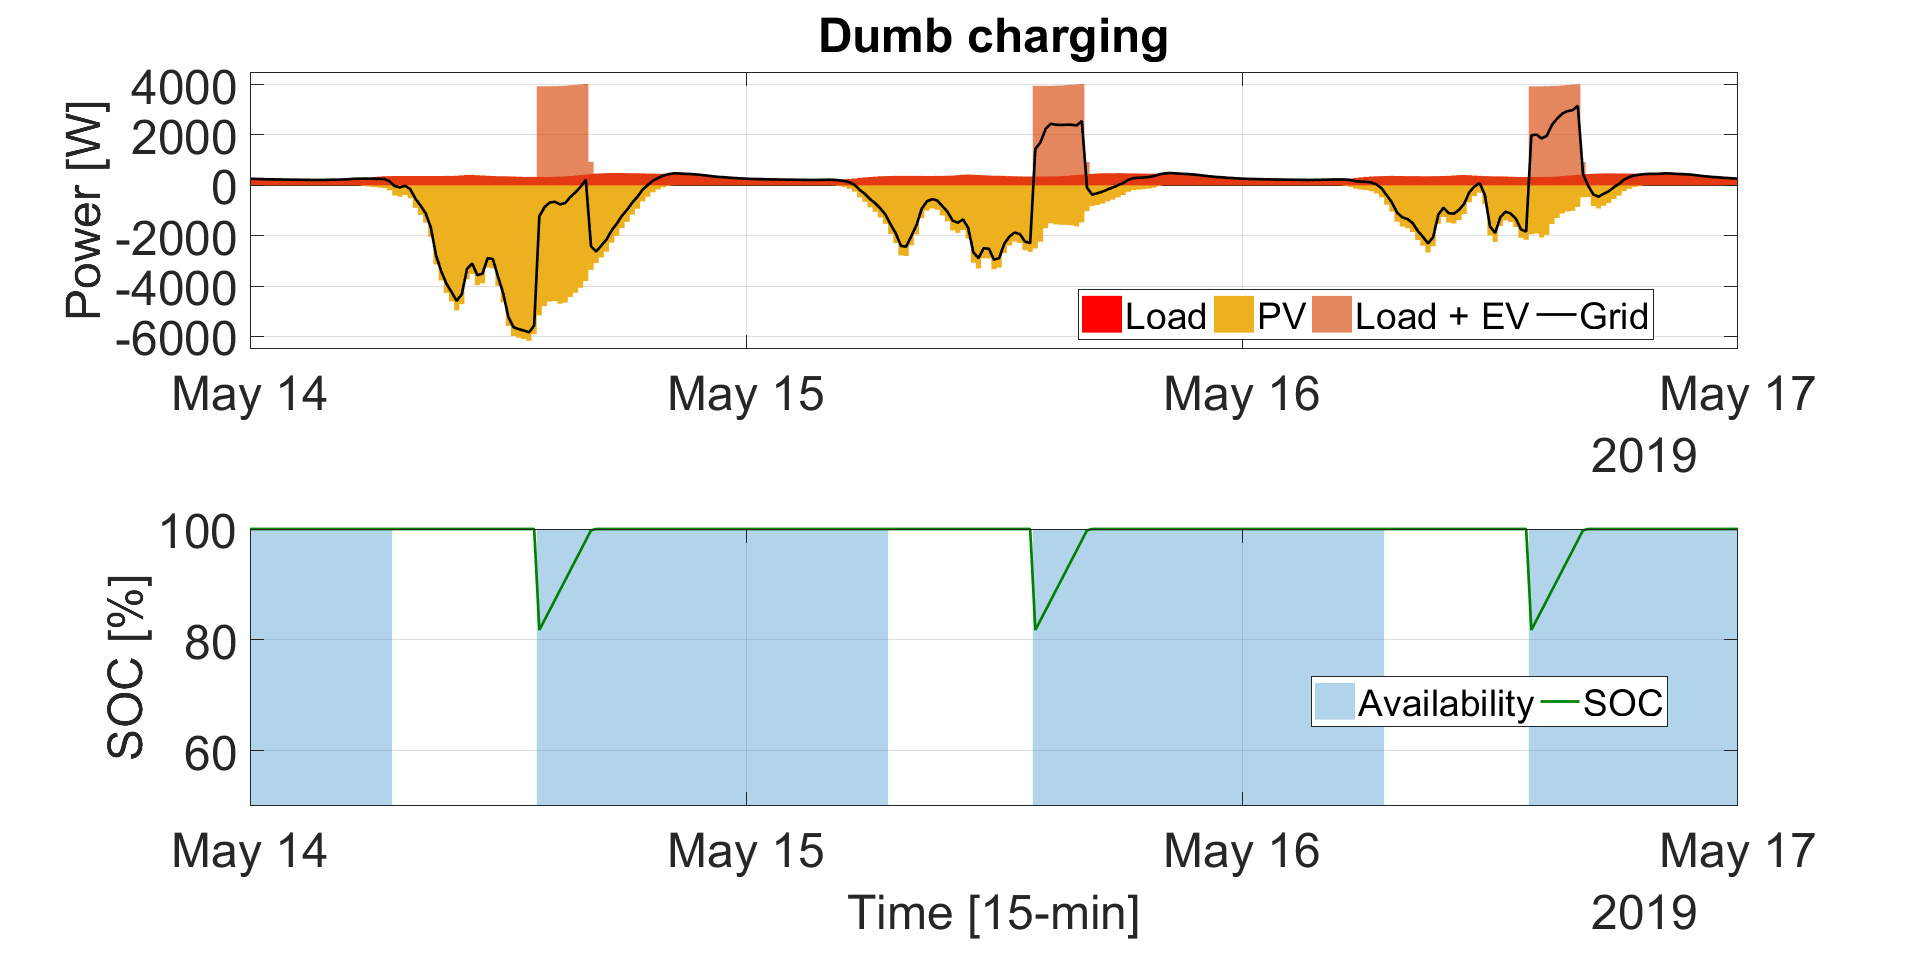 DumbCharging_vb2.png